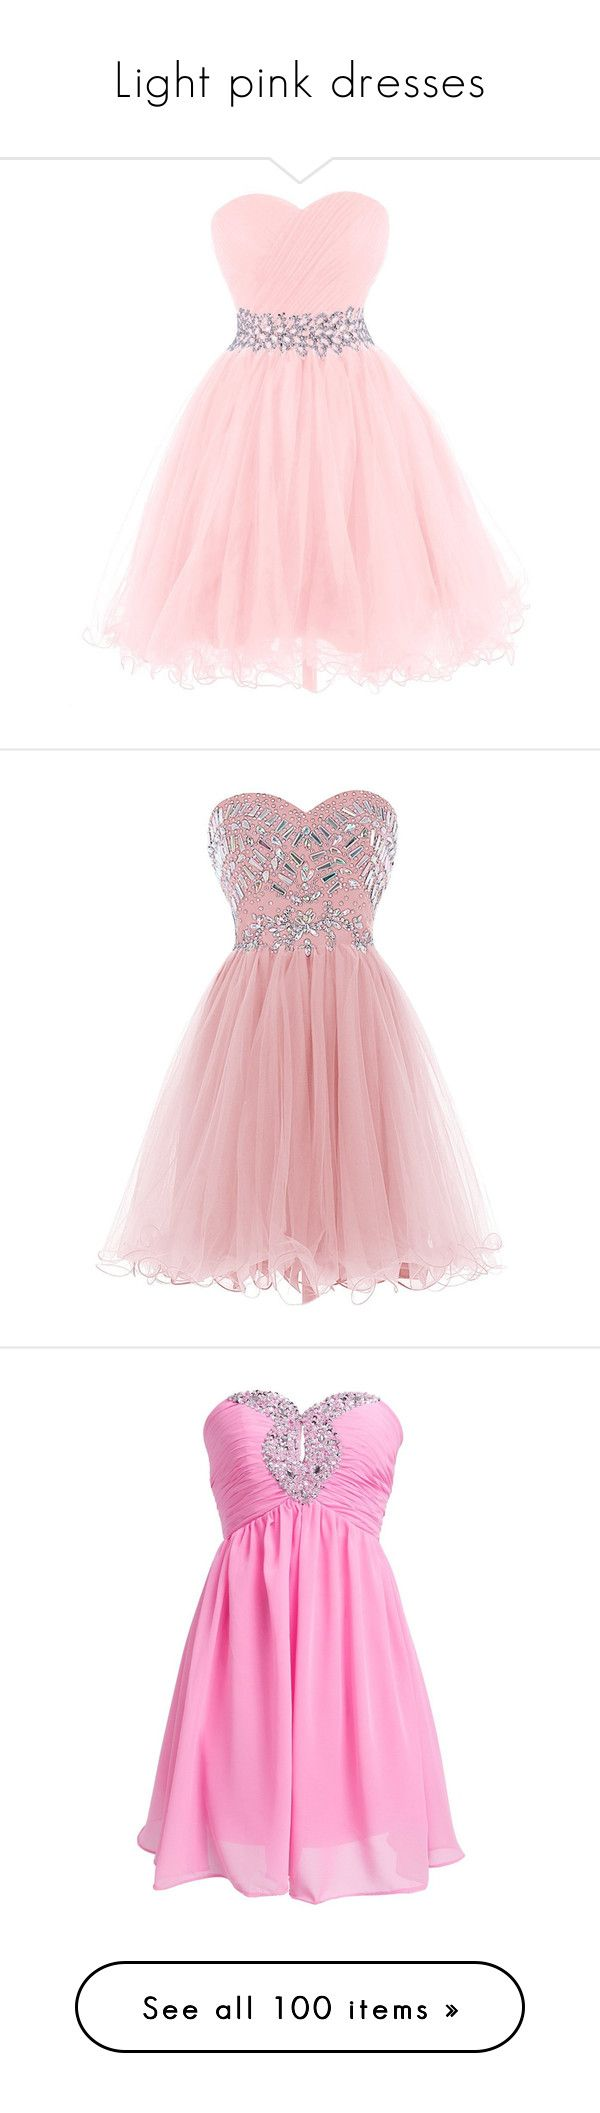 best letus dress up d images on pinterest formal prom